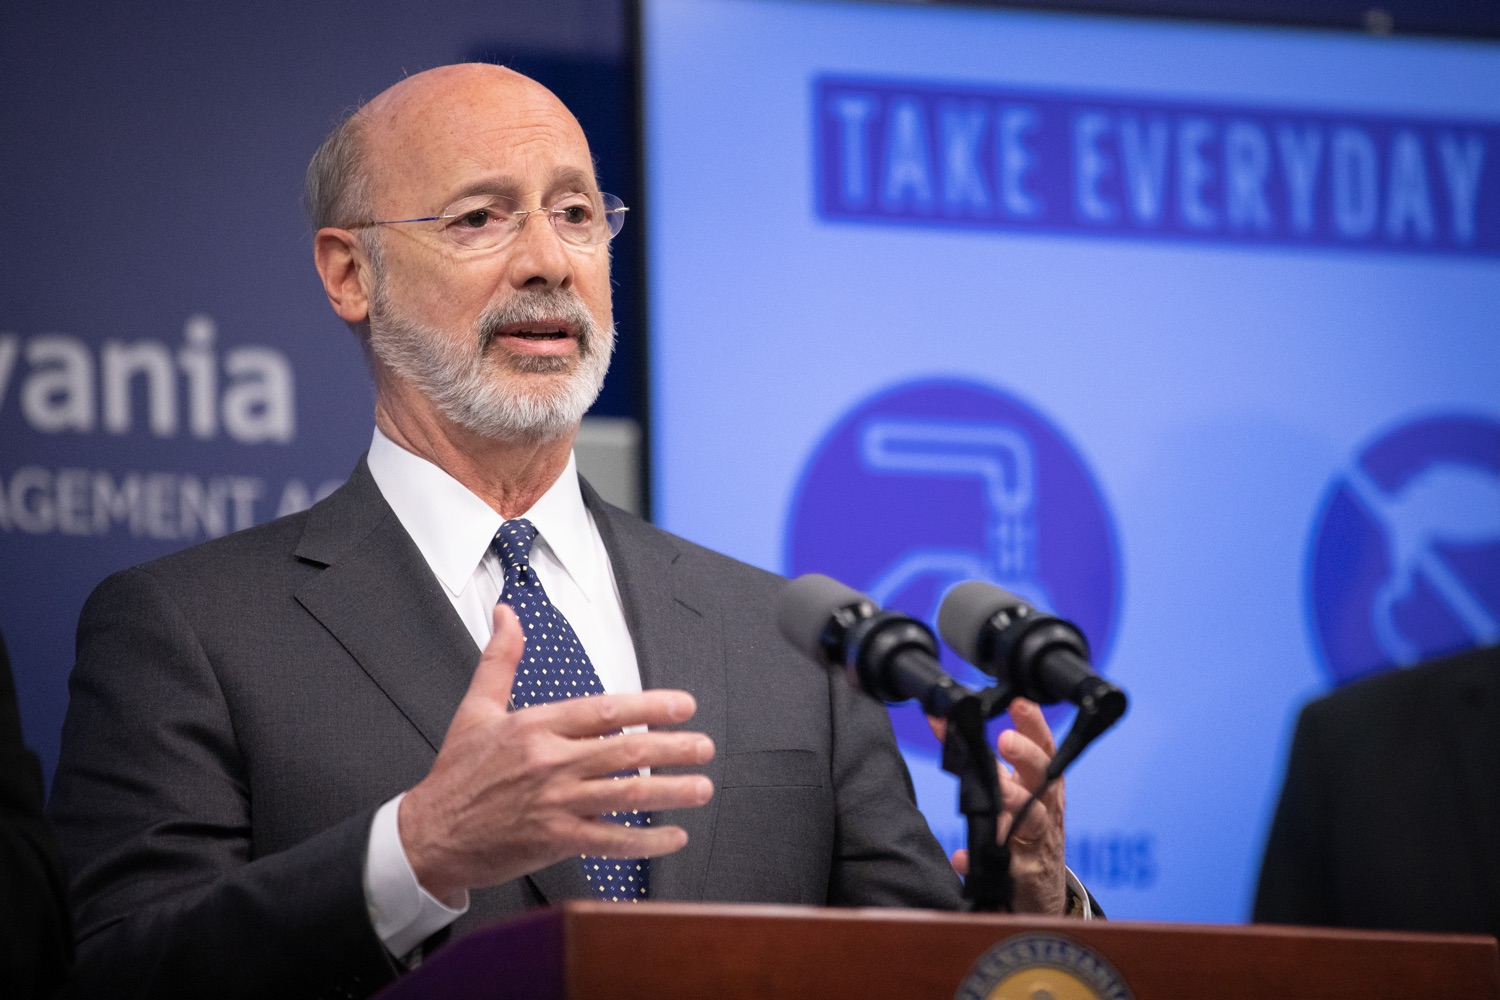 """<a href=""""https://filesource.wostreaming.net/commonwealthofpa/photo/17888_gov_covid19_update_dz_0020.jpg"""" target=""""_blank"""">⇣Download Photo<br></a>Governor Tom Wolf  speaking to reporters. Governor Tom Wolf and Secretary of Health Dr. Rachel Levine provided an update on the coronavirus known as COVID-19 and outline ongoing efforts to mitigate the virus in Pennsylvania. The Department of Health anticipates that there will be more Pennsylvanians who test positive for COVID-19 in the coming days and weeks and it is important for residents to know the commonwealth is prepared and to be prepared themselves. People have a higher chance of testing positive for COVID-19 if they have traveled to a country or state with known community outbreaks or have come in contact with someone who has the virus. The Wolf Administration is working with the health care community across Pennsylvania to keep them informed, consult on patient testing, and ensure they have the resources they need to care for patients. .March 16, 2020  Harrisburg Pa."""